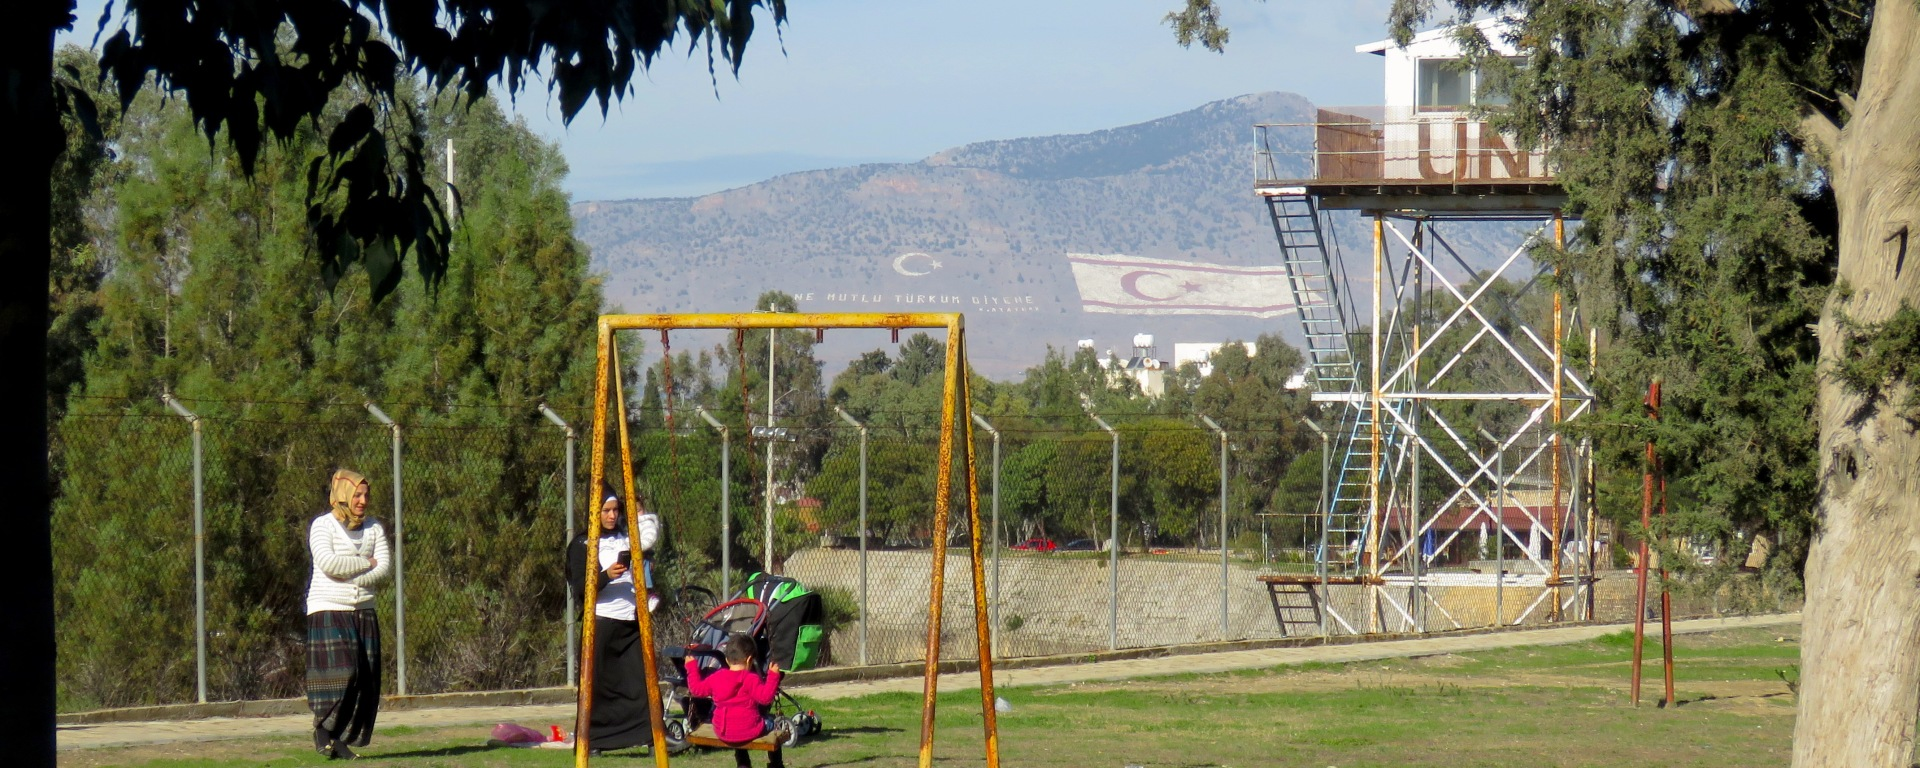 Two Turkish Cypriot Women and their children play in Nicosia's Forbidden Zone with two stark reminders of the occupation on nearby mountains - by Anika Mikkelson - Miss Maps - www.MissMaps.com